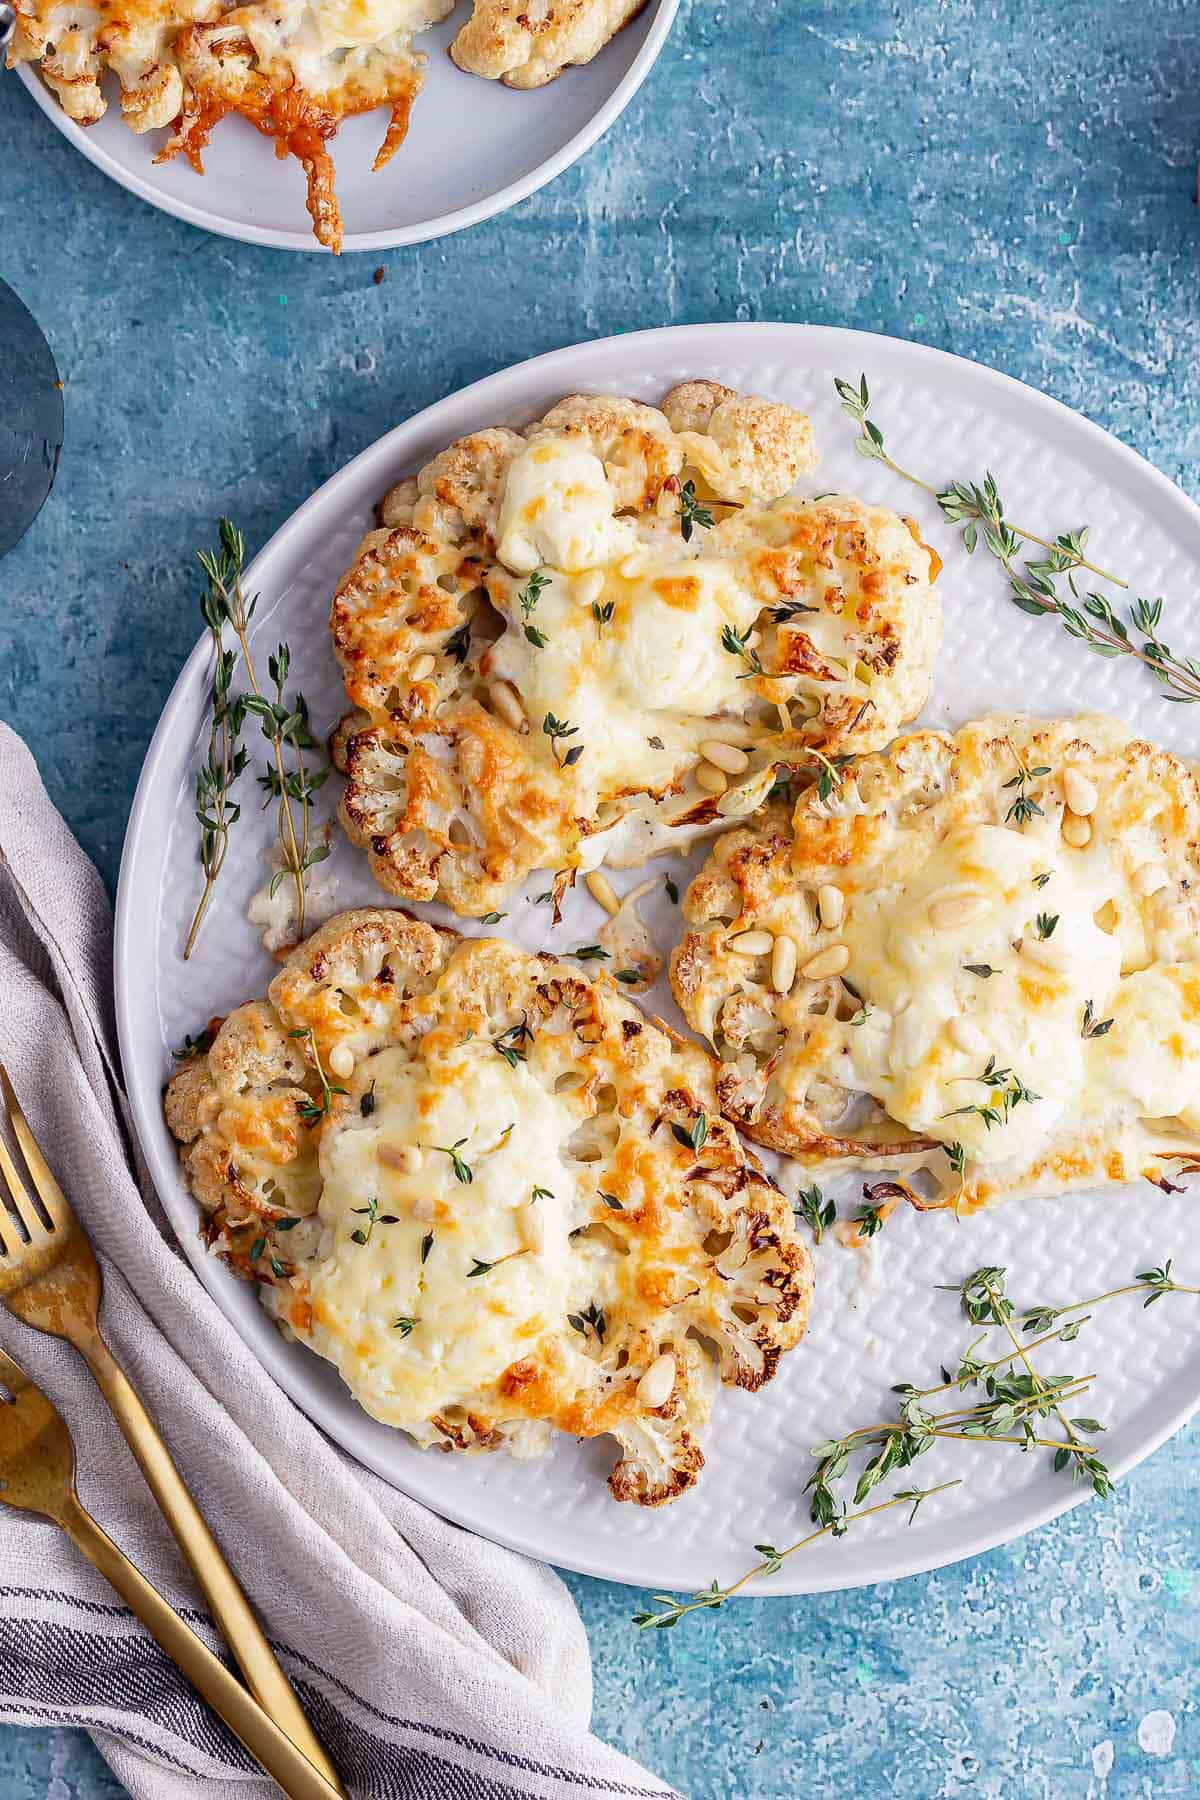 Cheesy cauliflower steak with cloth and gold fork